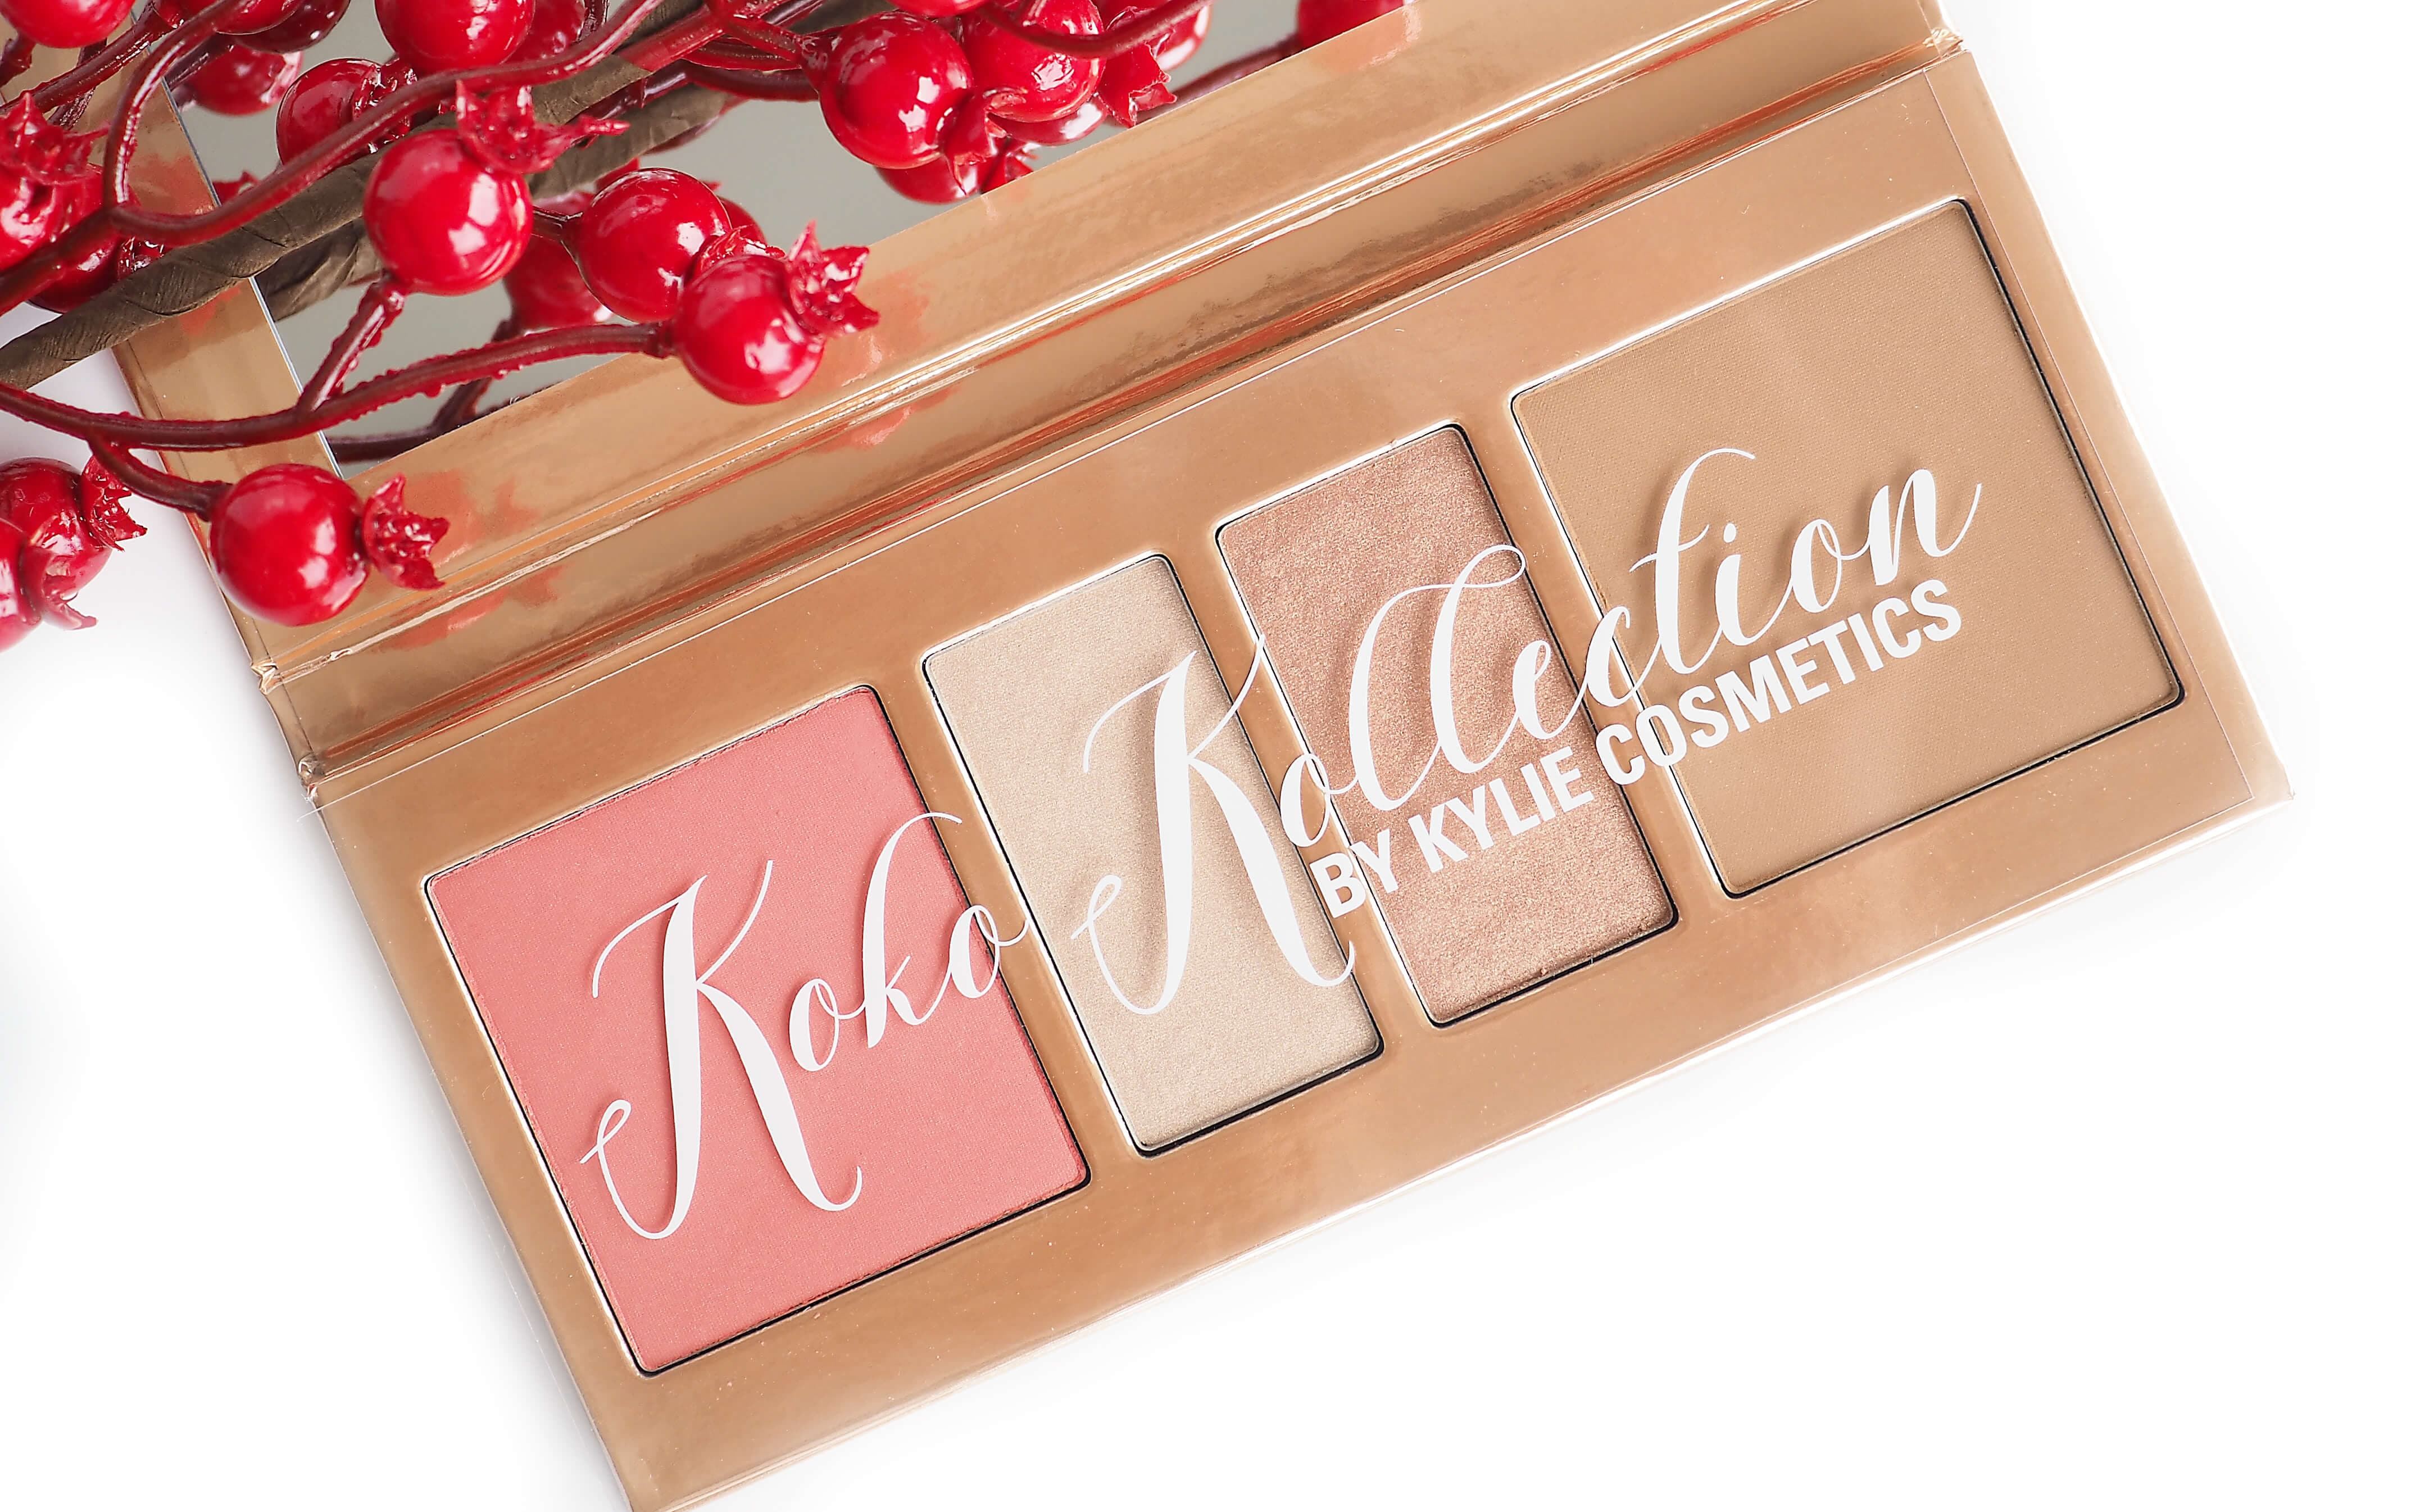 Opinia KYLIE COSMETICS KOKO KOLLECTION PRESSED POWDER PALETTE